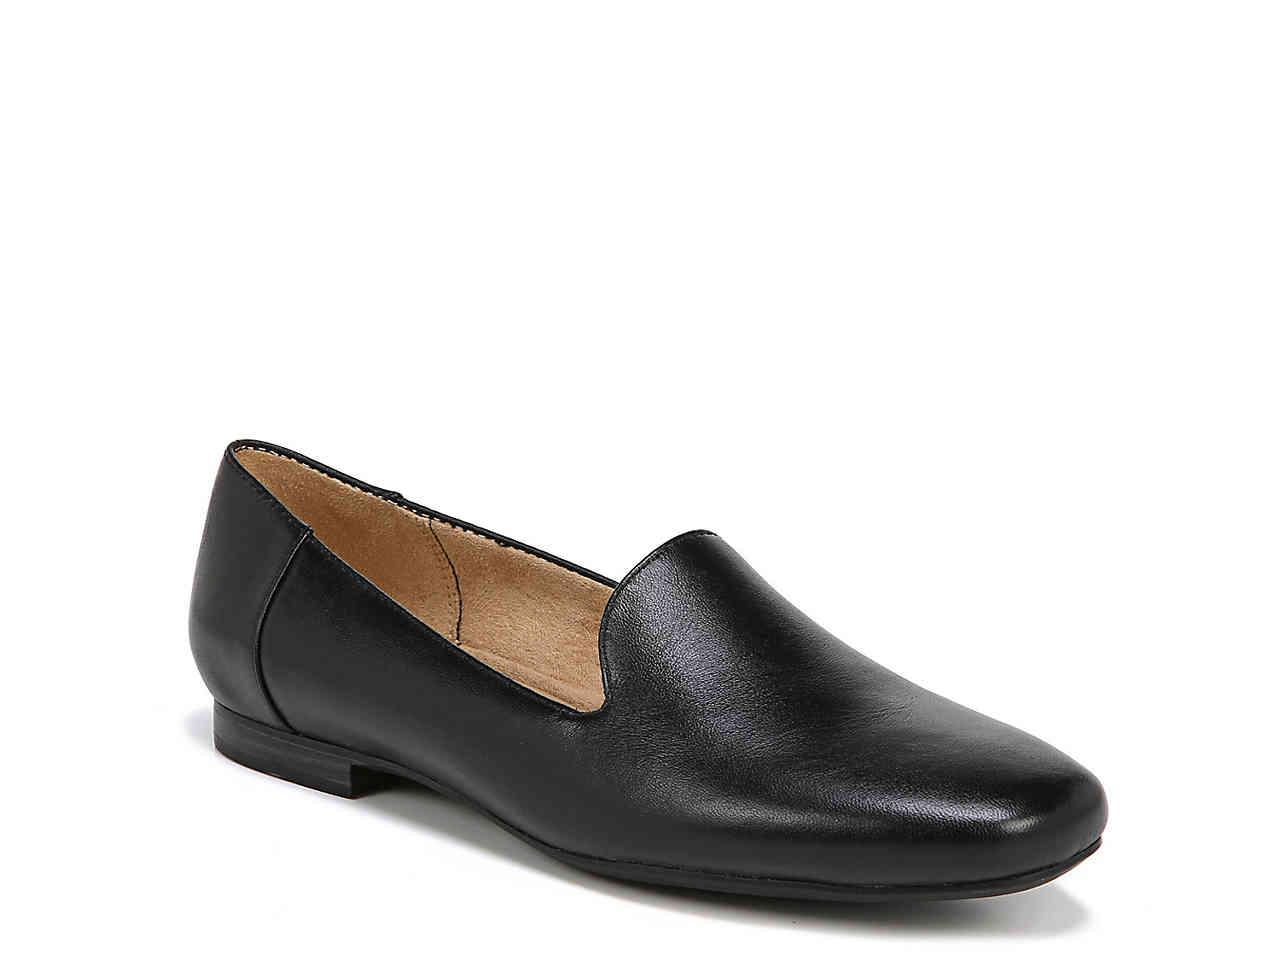 321f70170f0 Lyst - Naturalizer Kit Loafer in Black